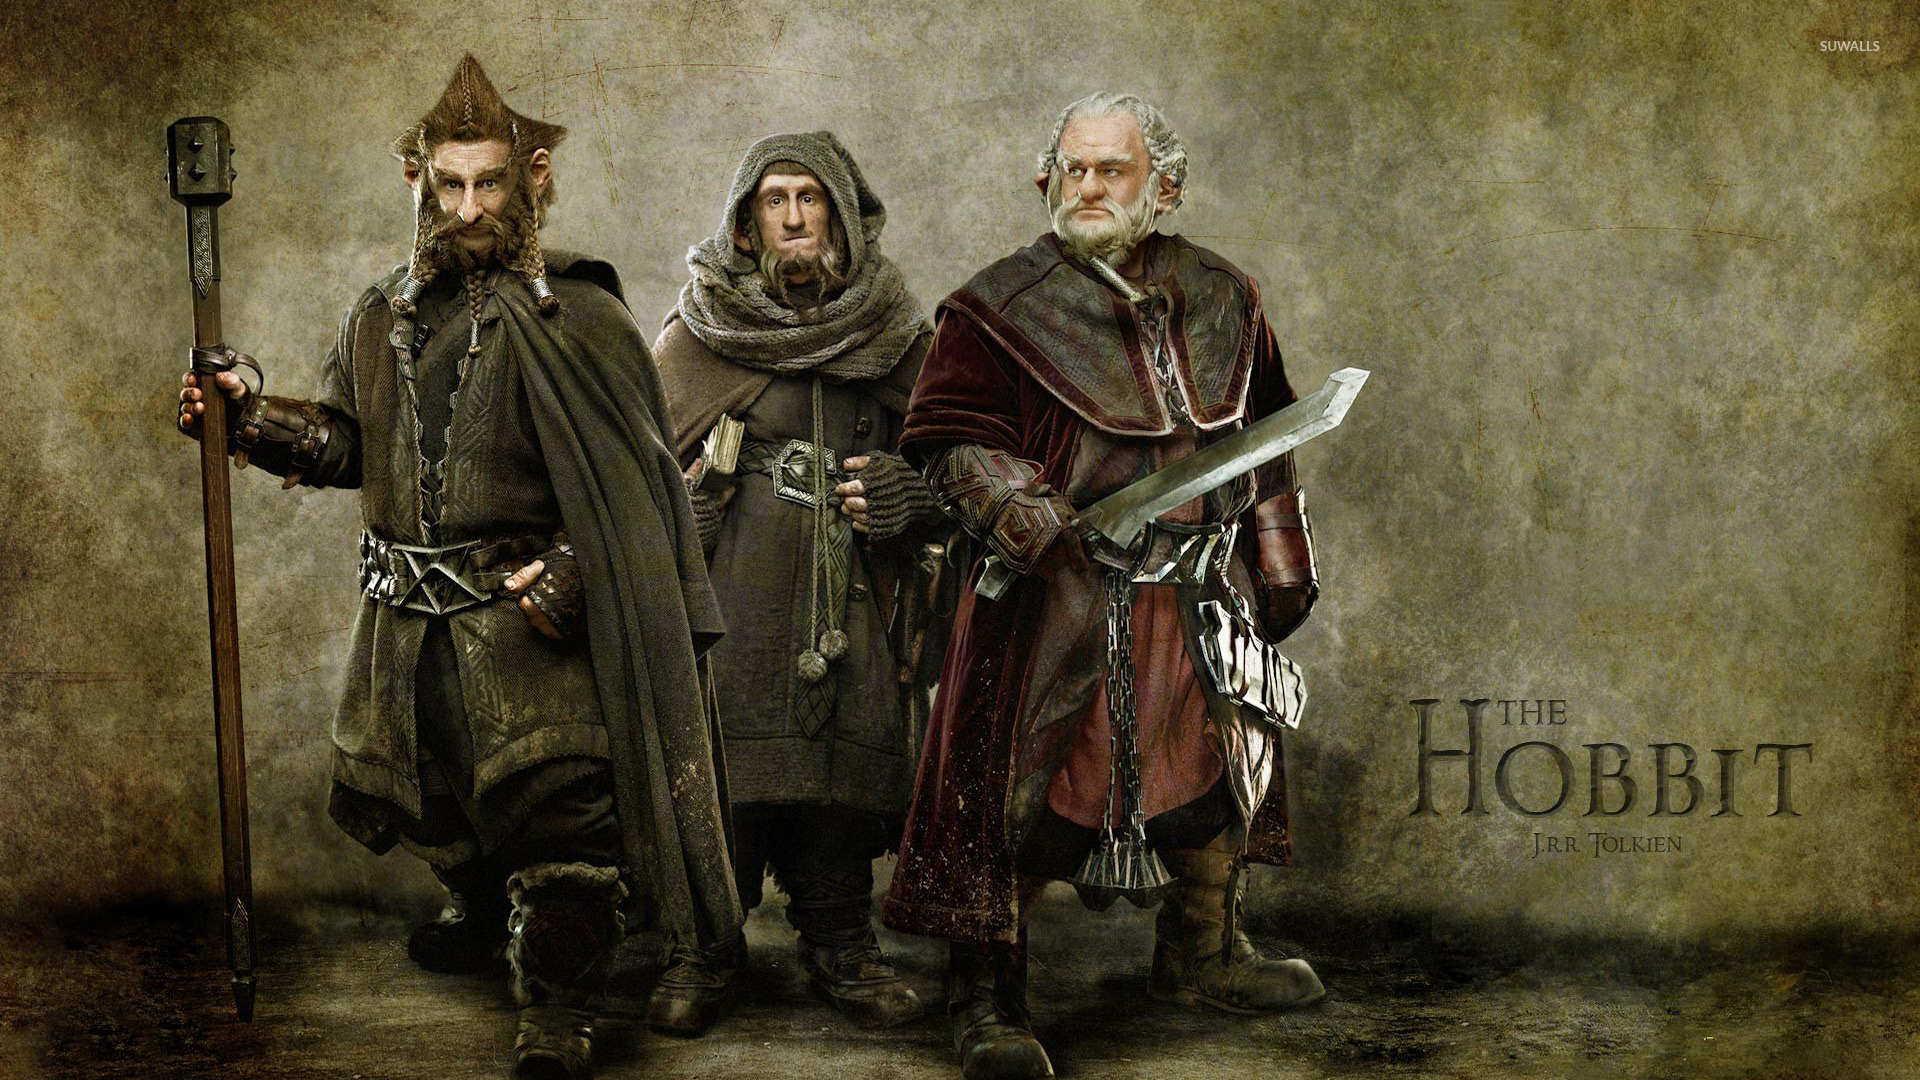 The Hobbit wallpaper   Movie wallpapers   11352 1920x1080